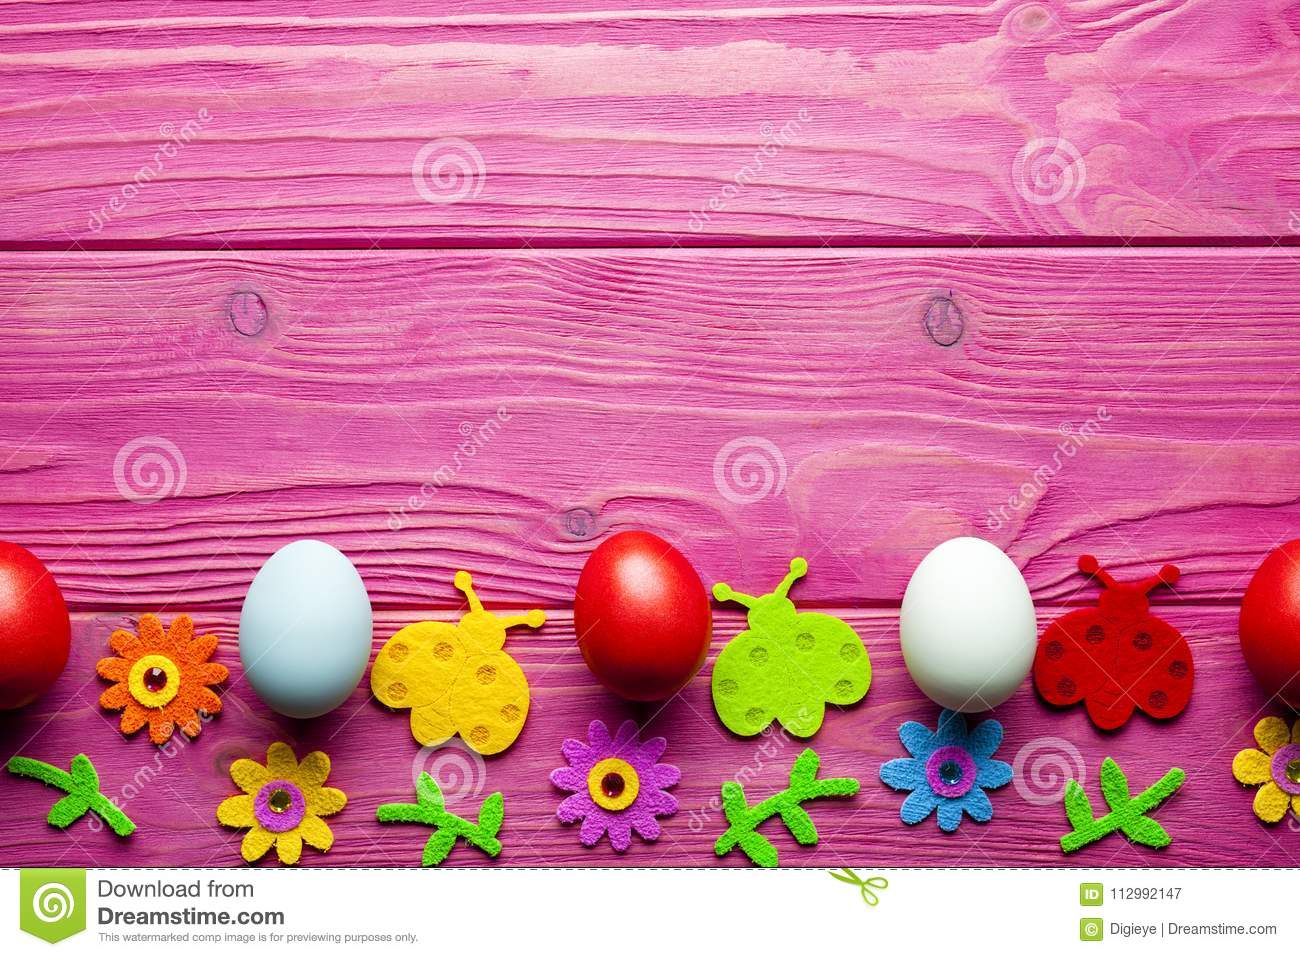 Easter background - colored eggs and colorful decorations